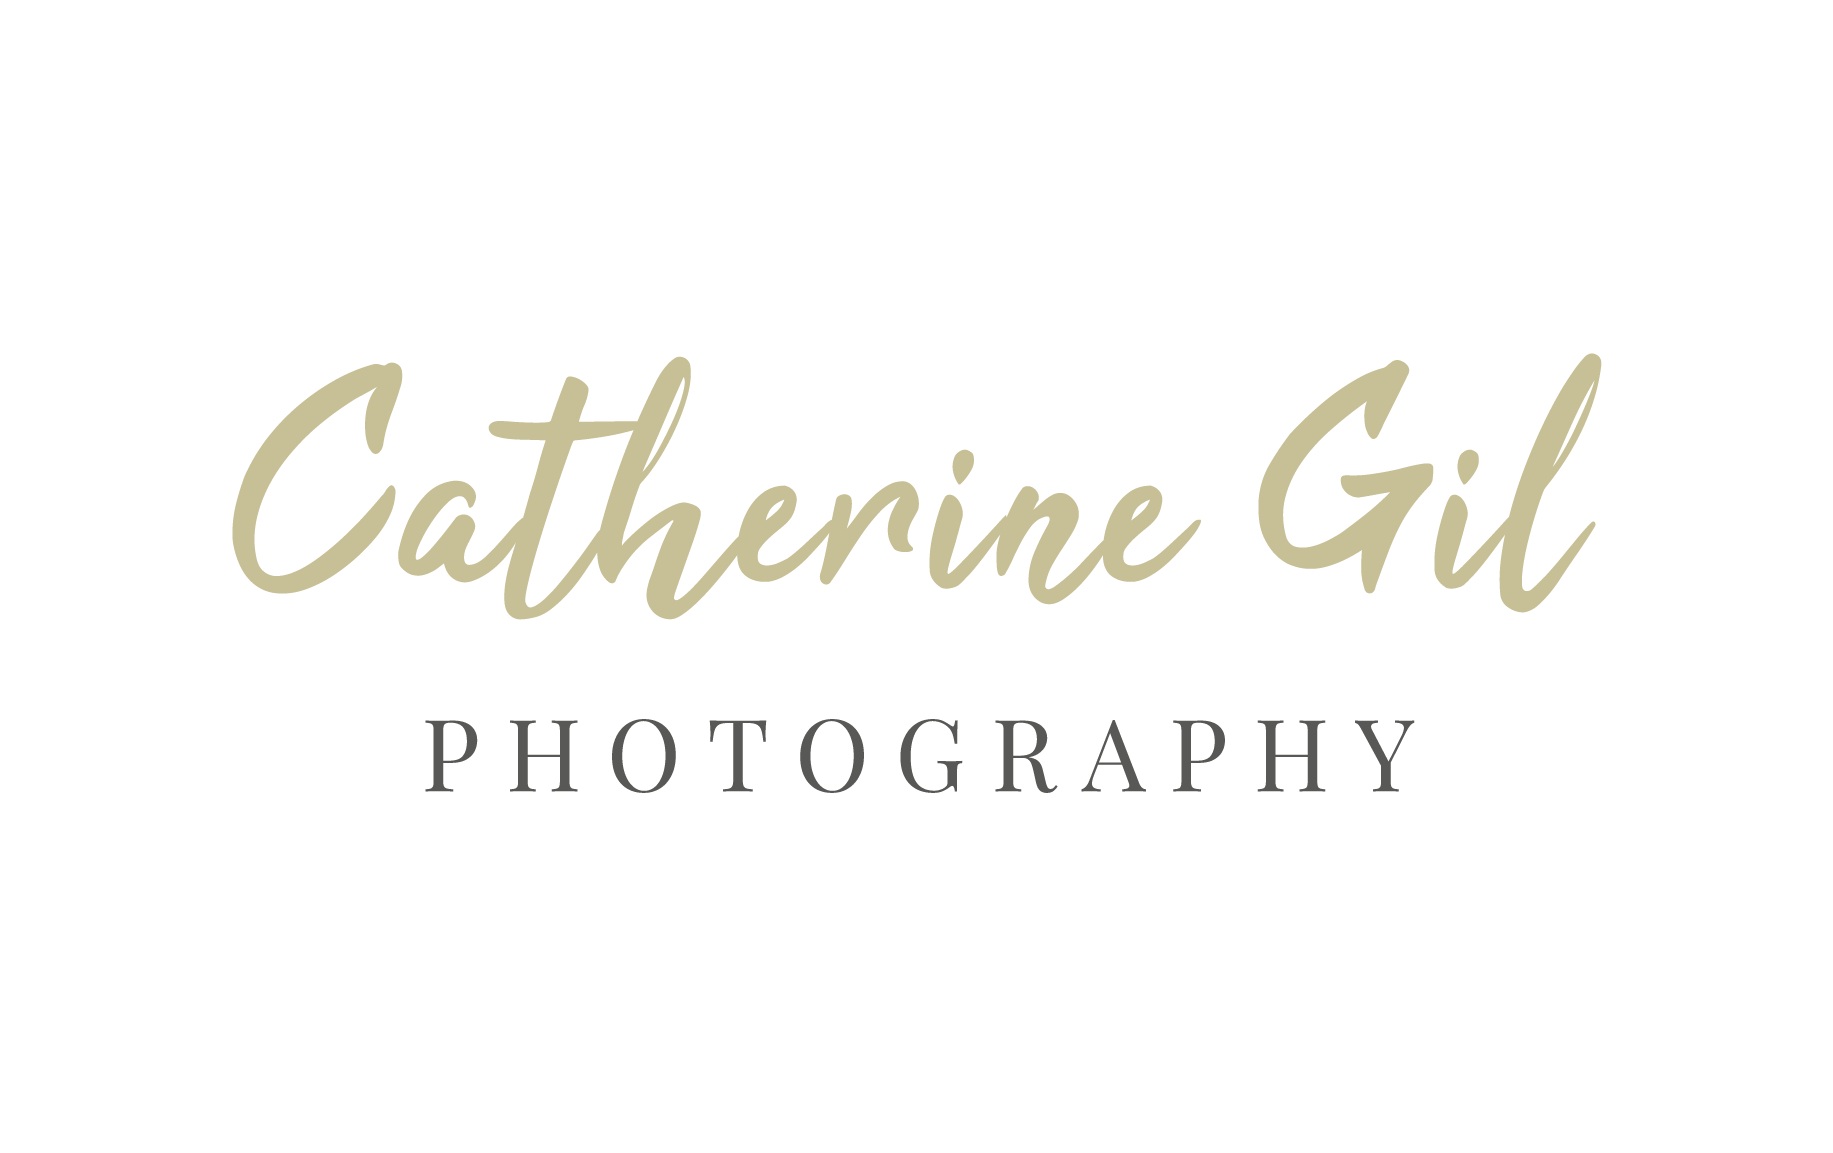 Catherine Gil Photography